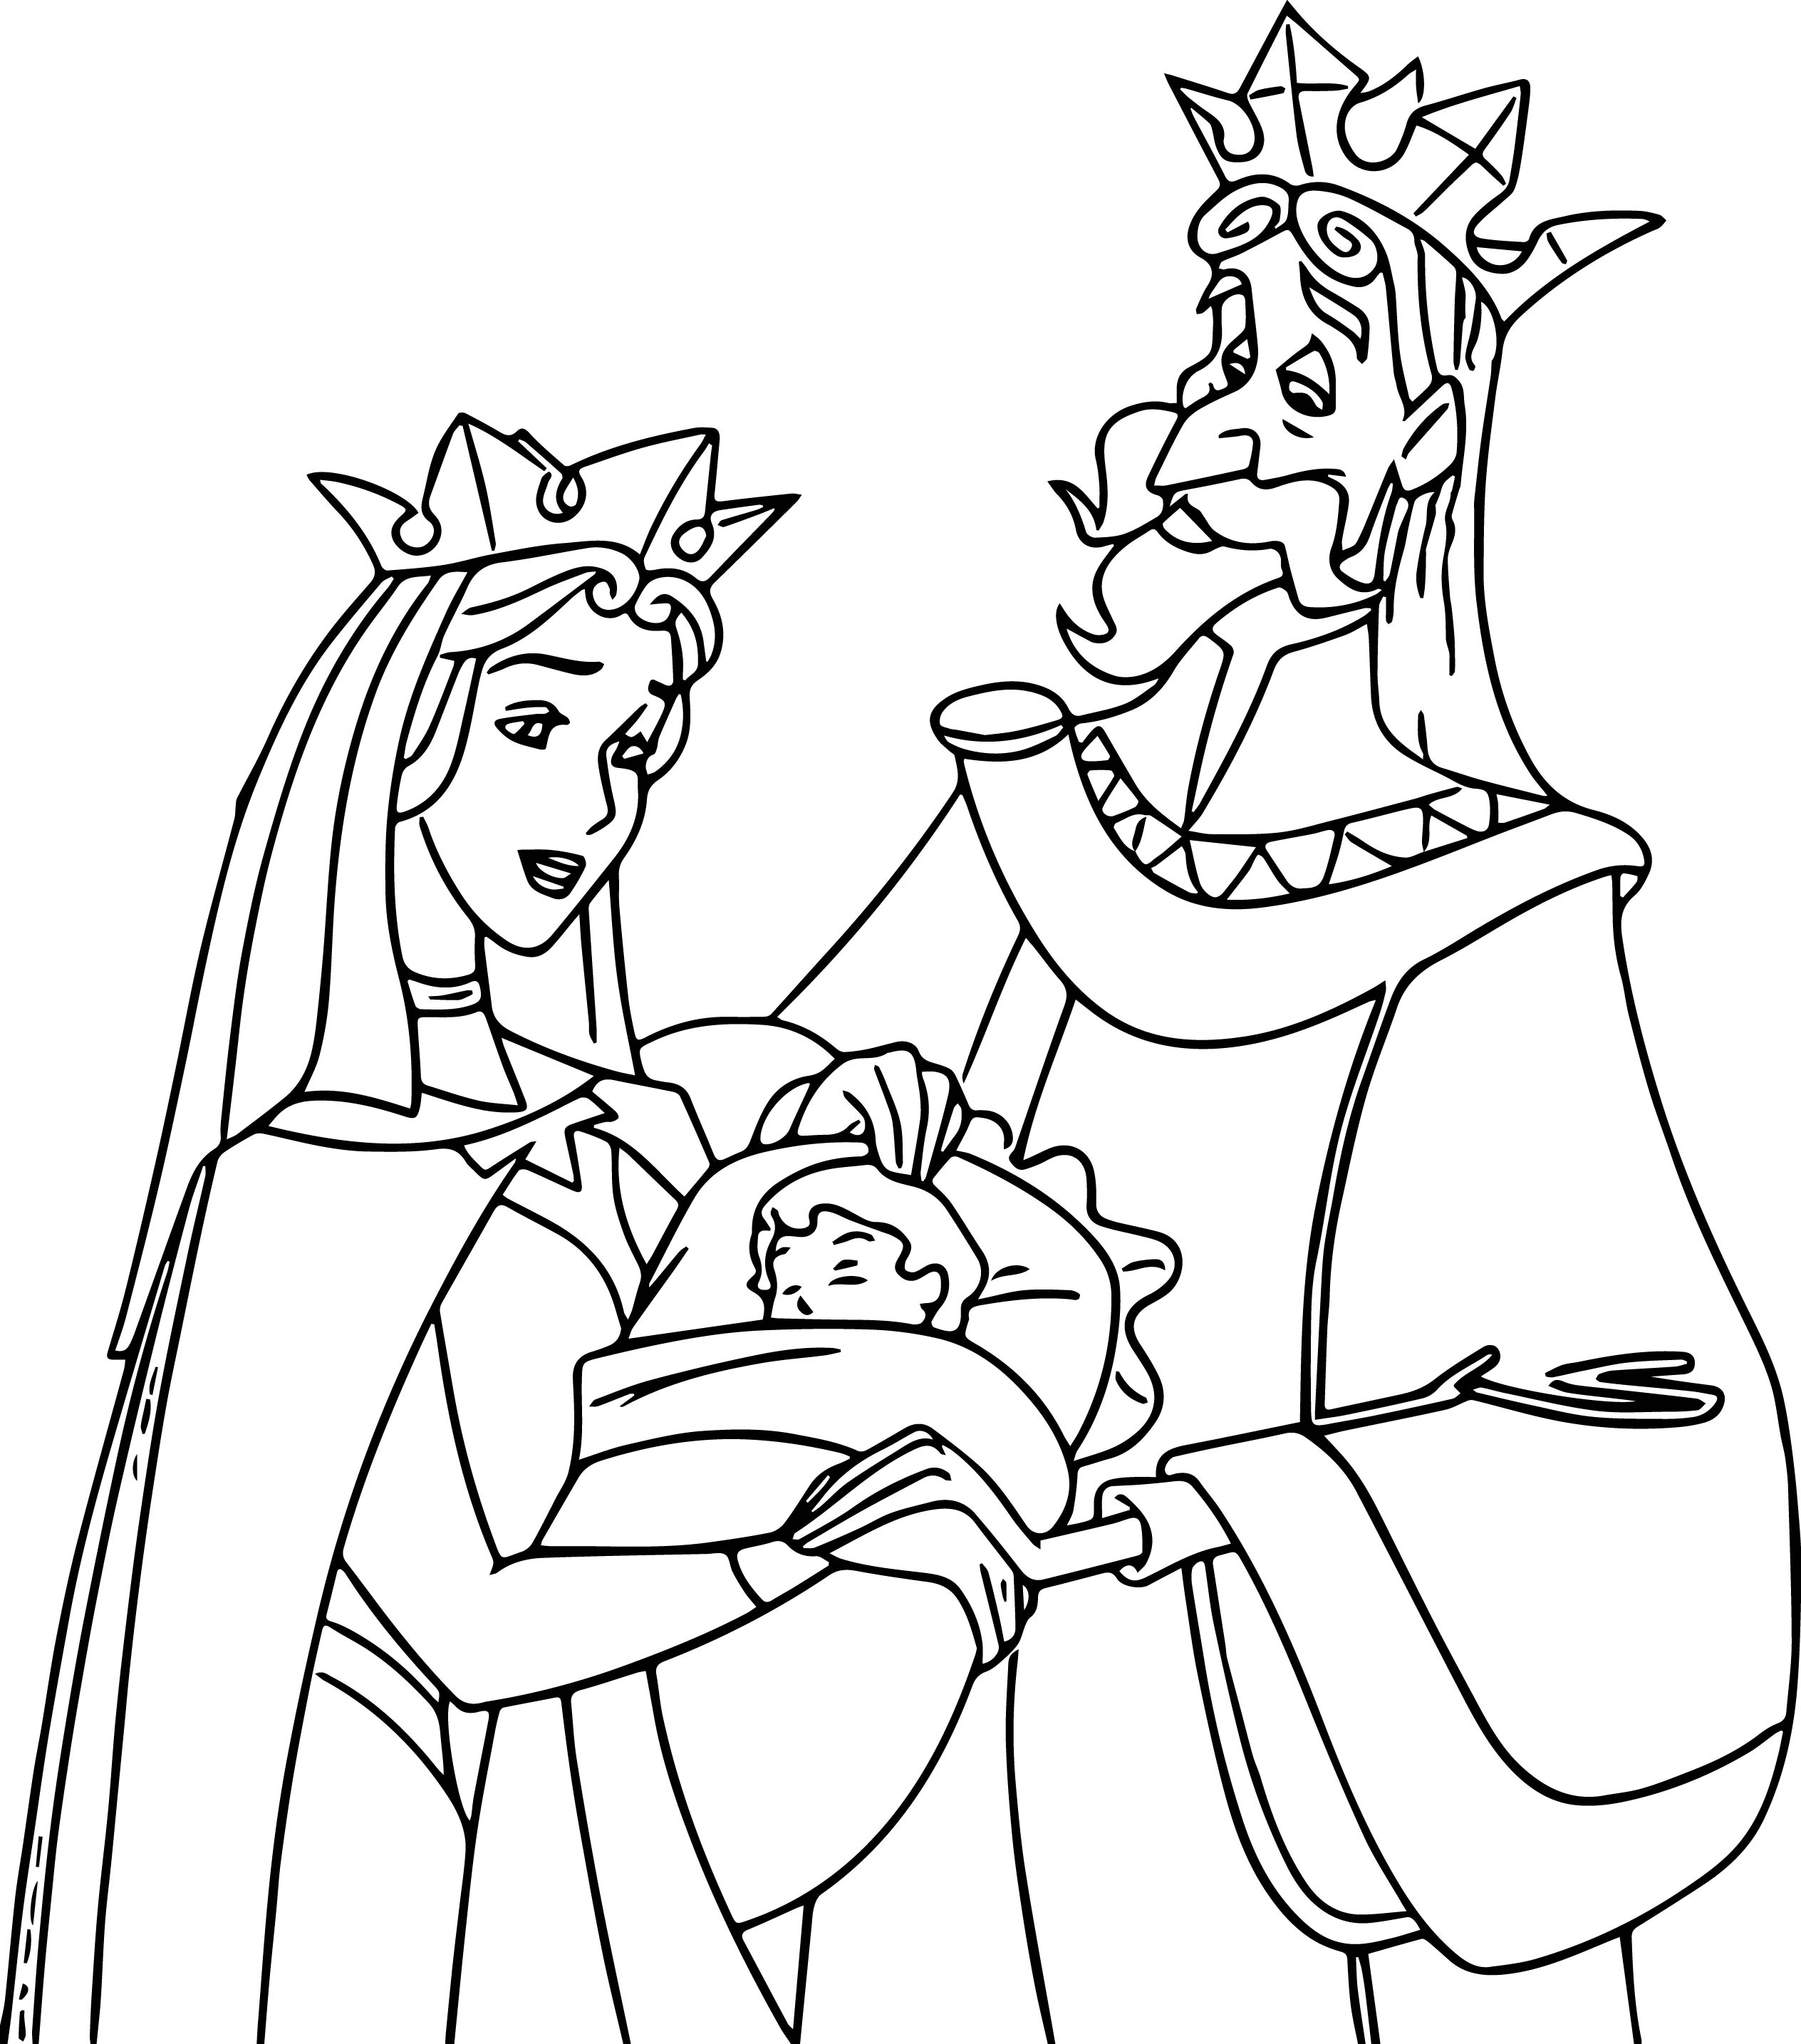 Sleeping beauty baby his mom and dad coloring page for Sleeping coloring page